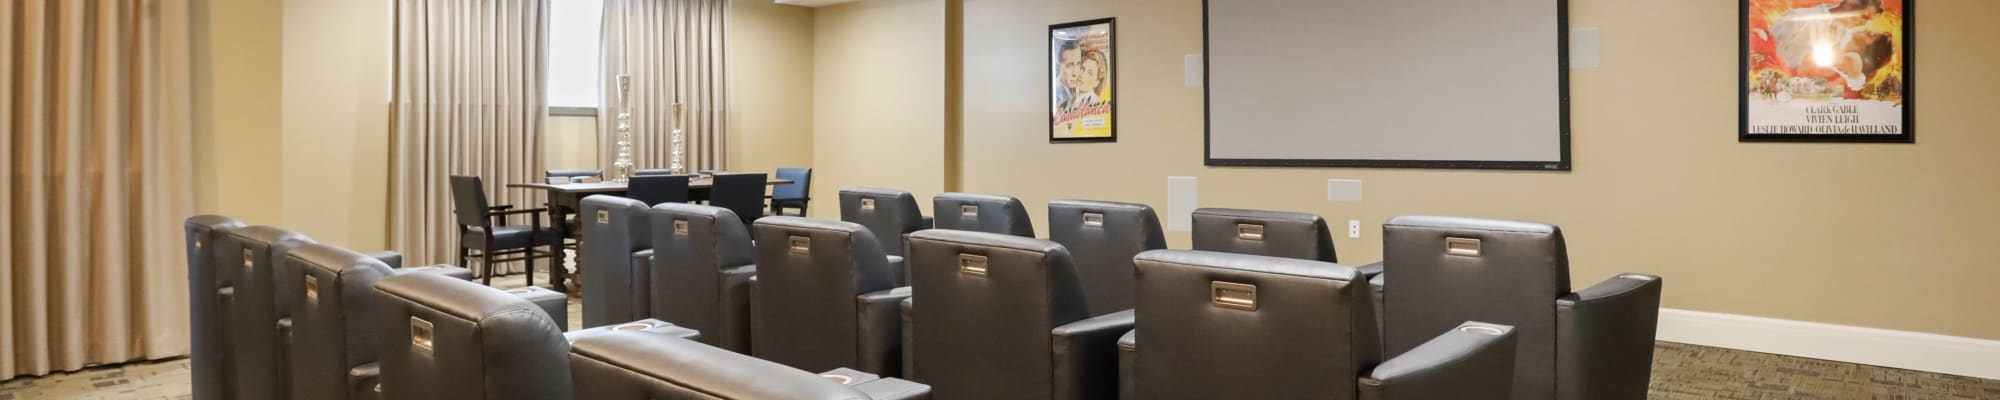 Services & Amenities at Harmony at Martinsburg in Martinsburg, West Virginia